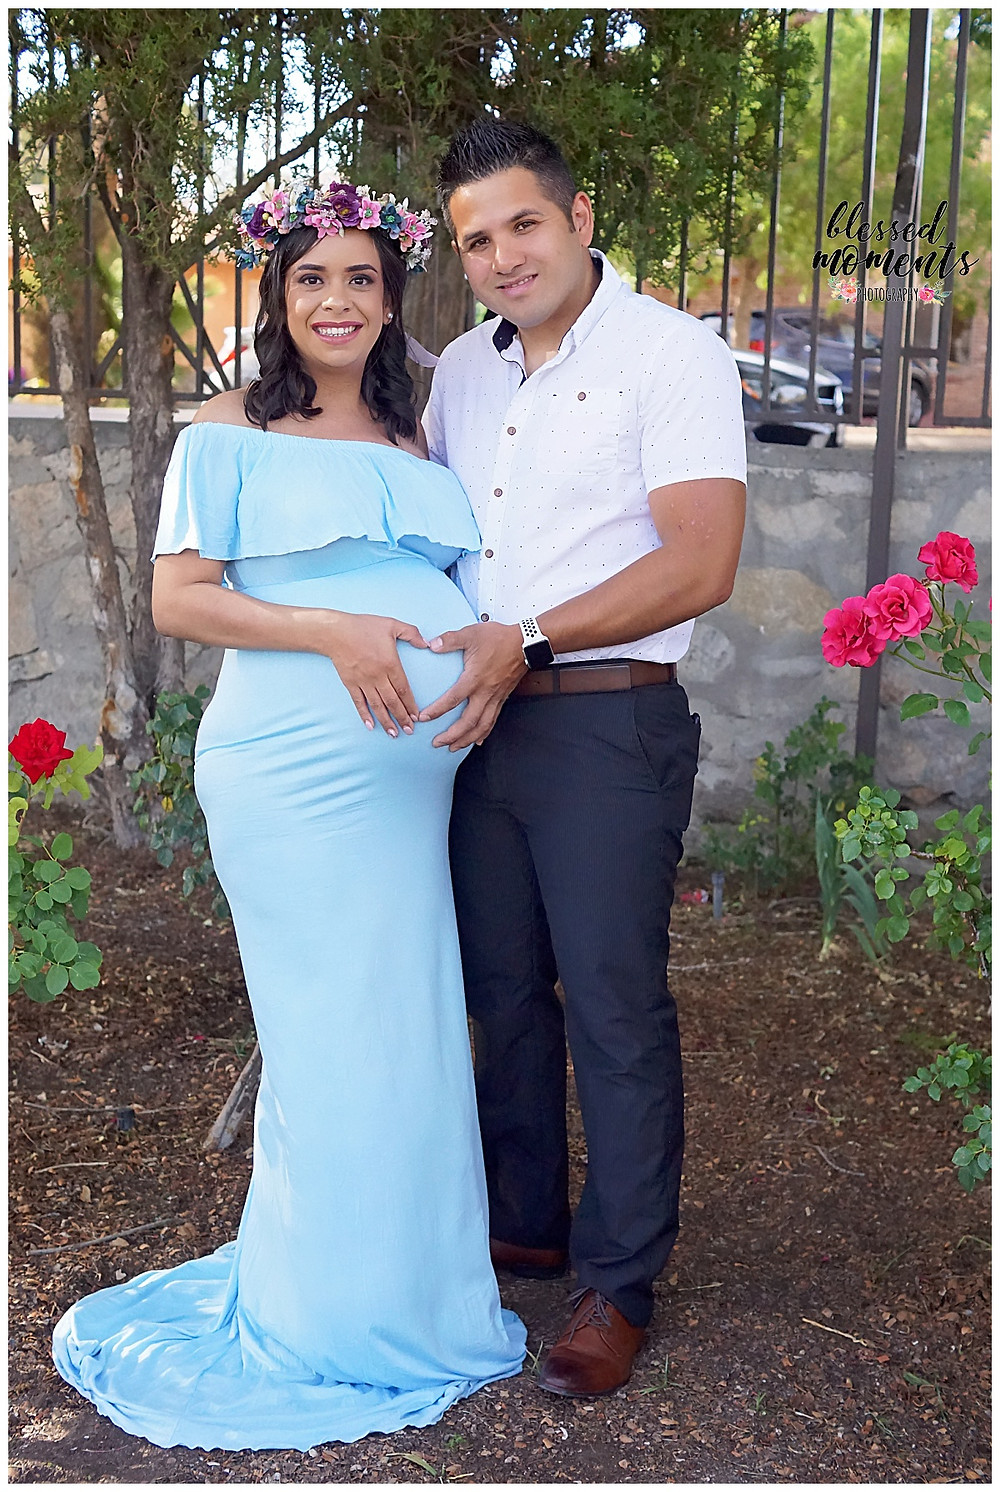 Proud papa and expecting mother maternity photo taken in El Paso Rose Garden